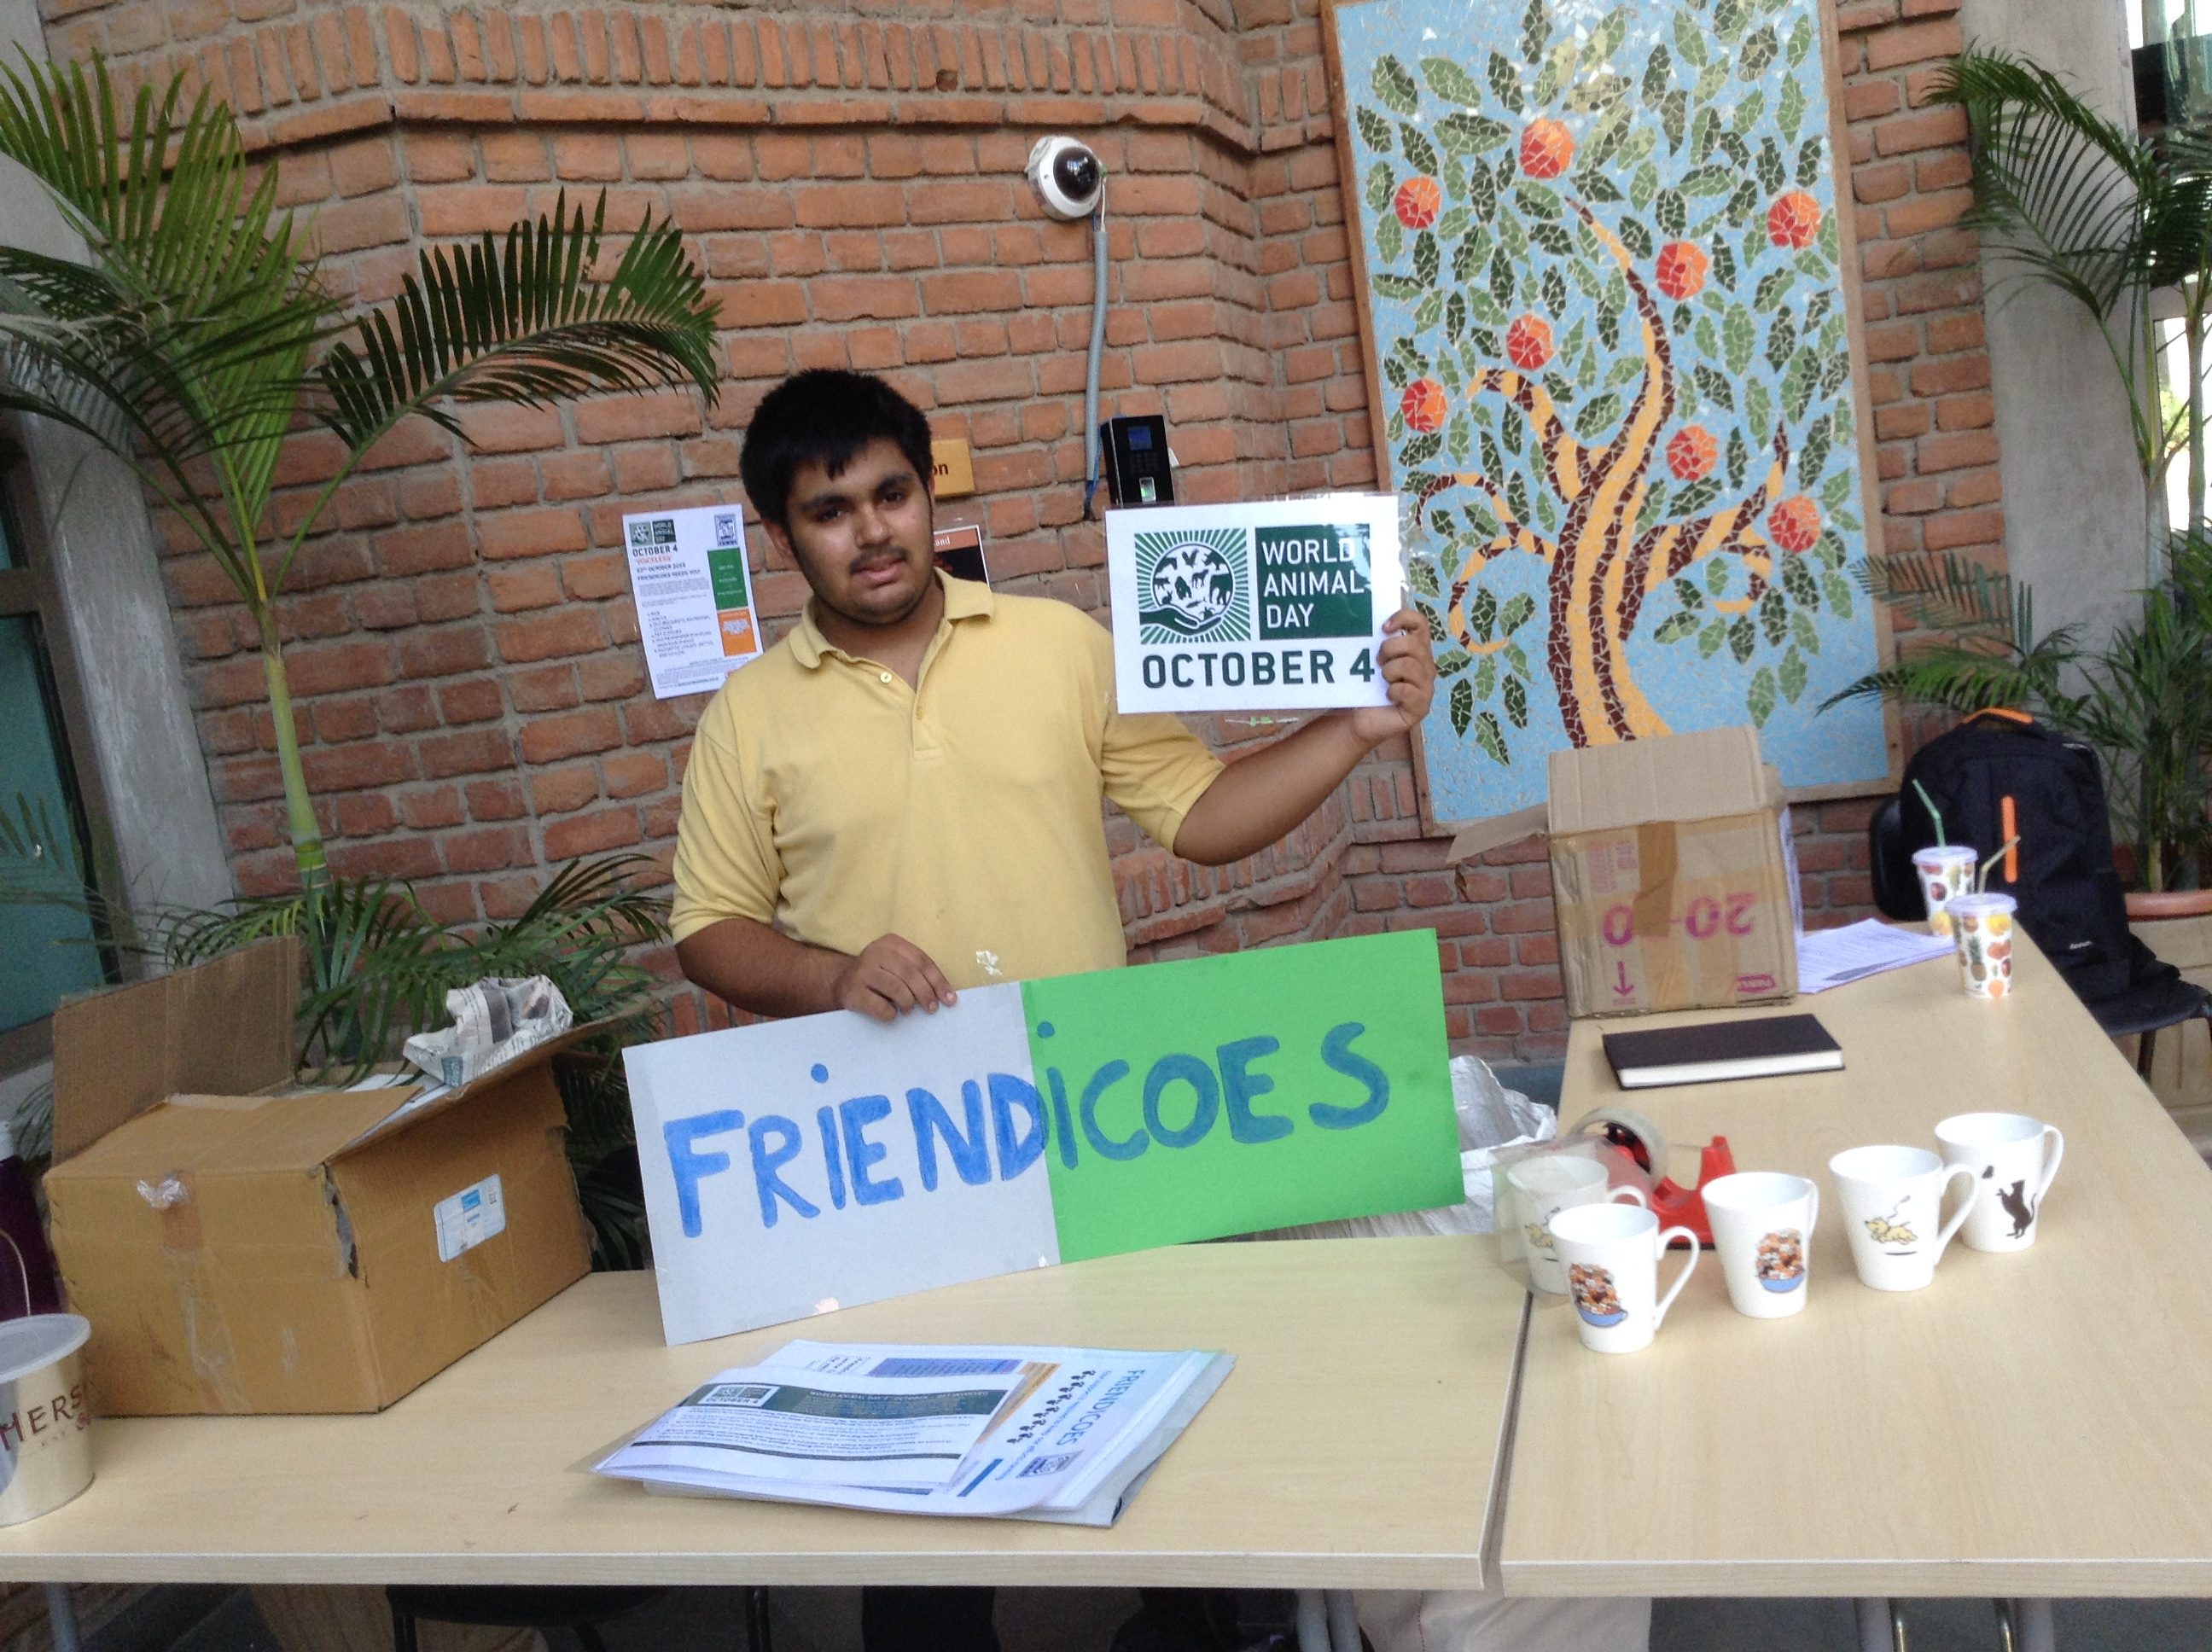 Friendicoes Fundraiser/Donation Drive and World Animal Day Celebration